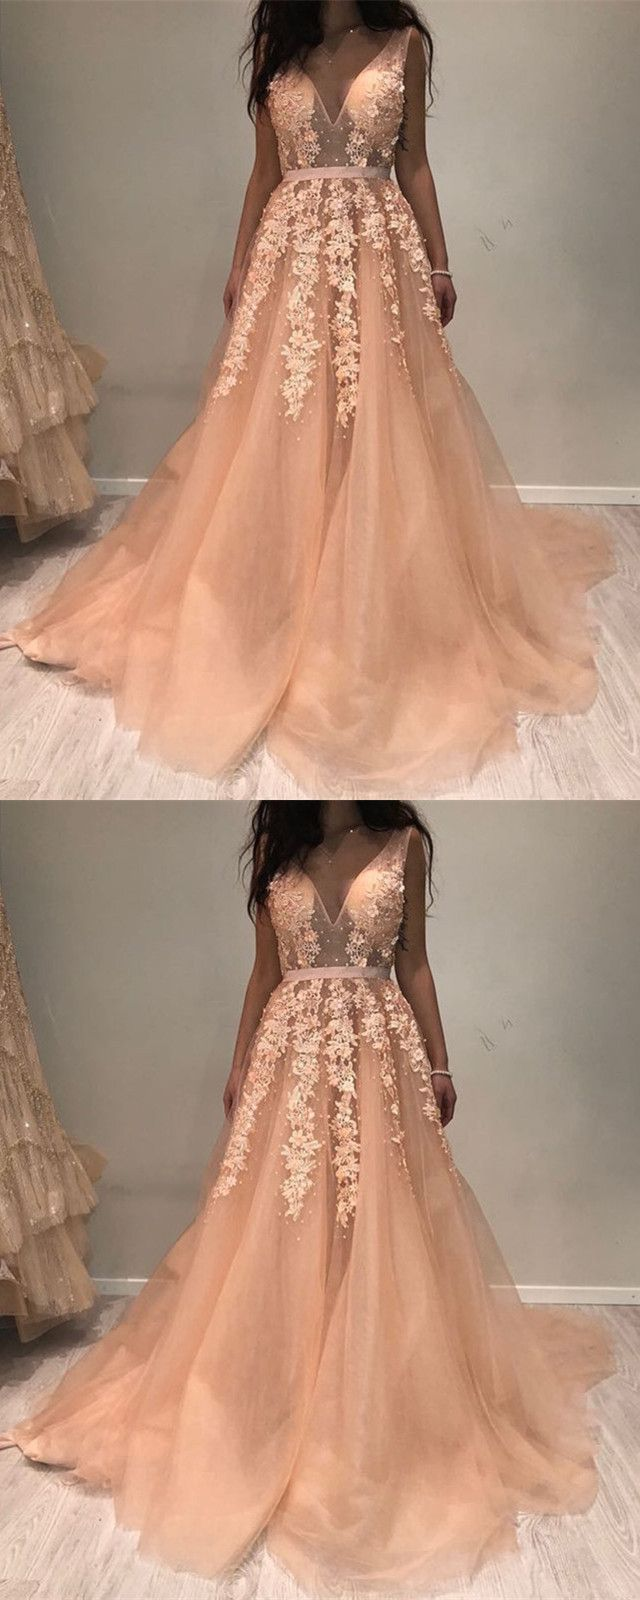 Plunge vneck long tulle prom dresses lace appliques evening gowns